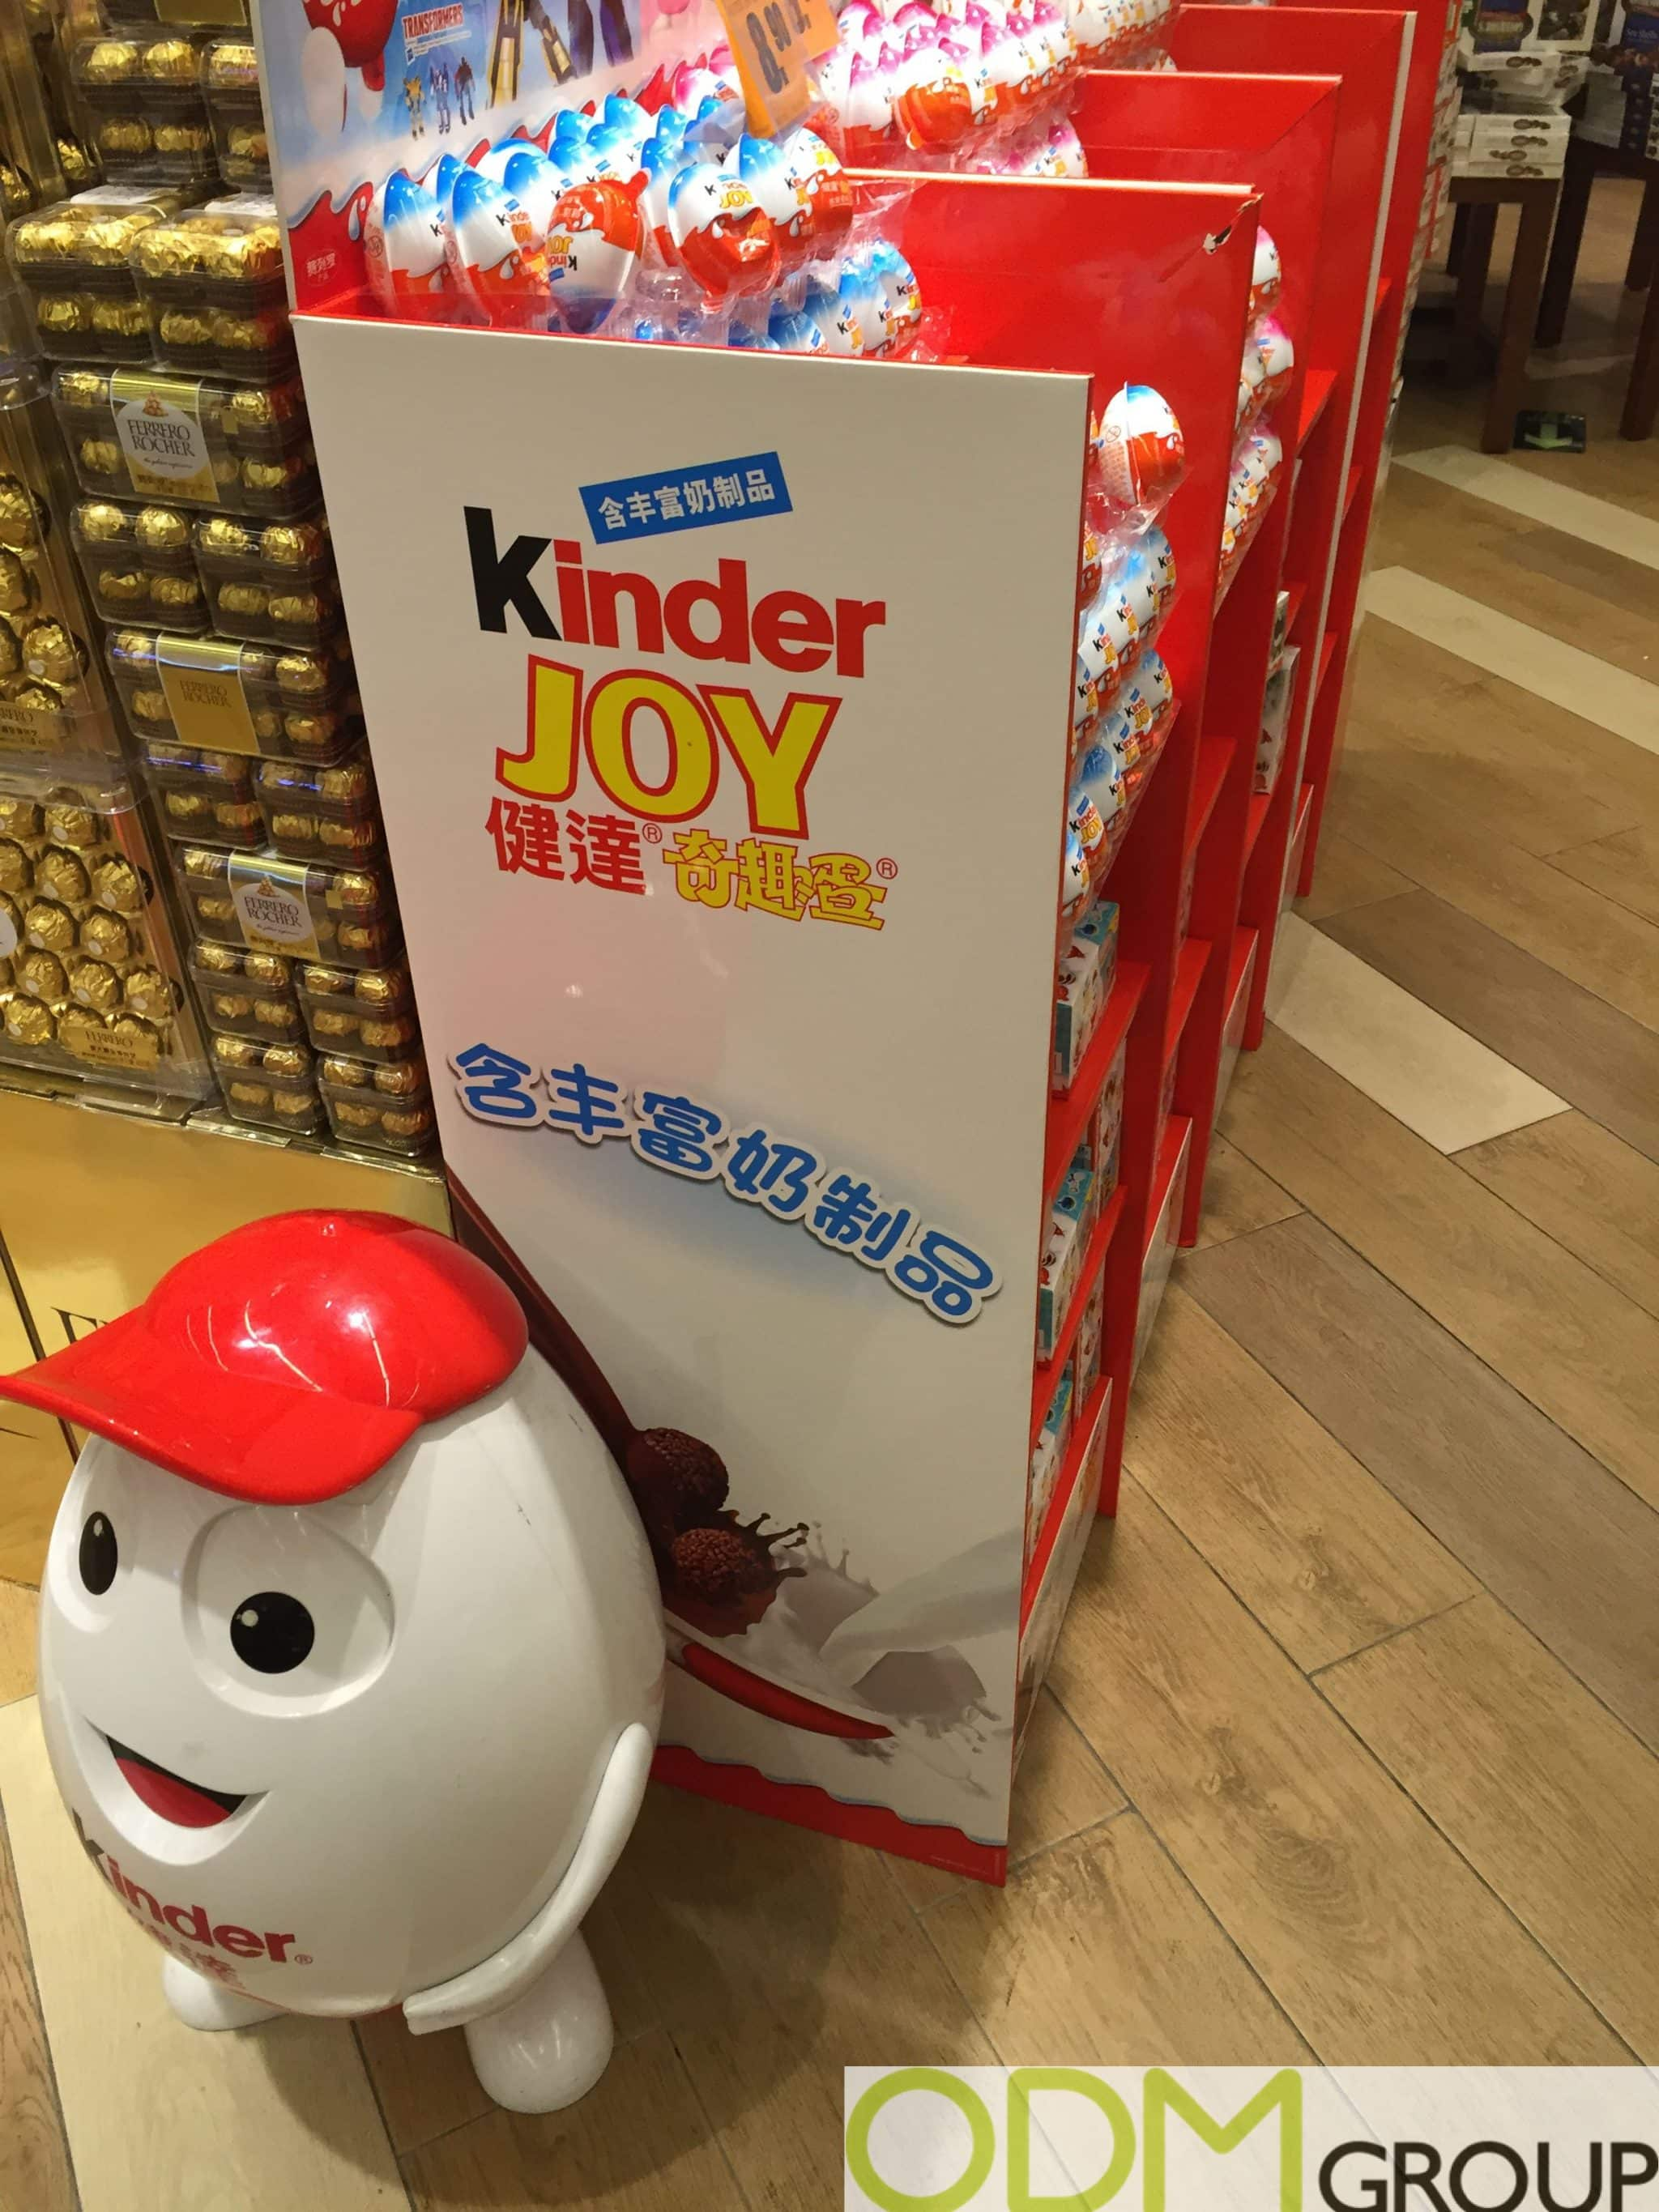 Easter Marketing - Kinder Chocolate In Store Statue Display